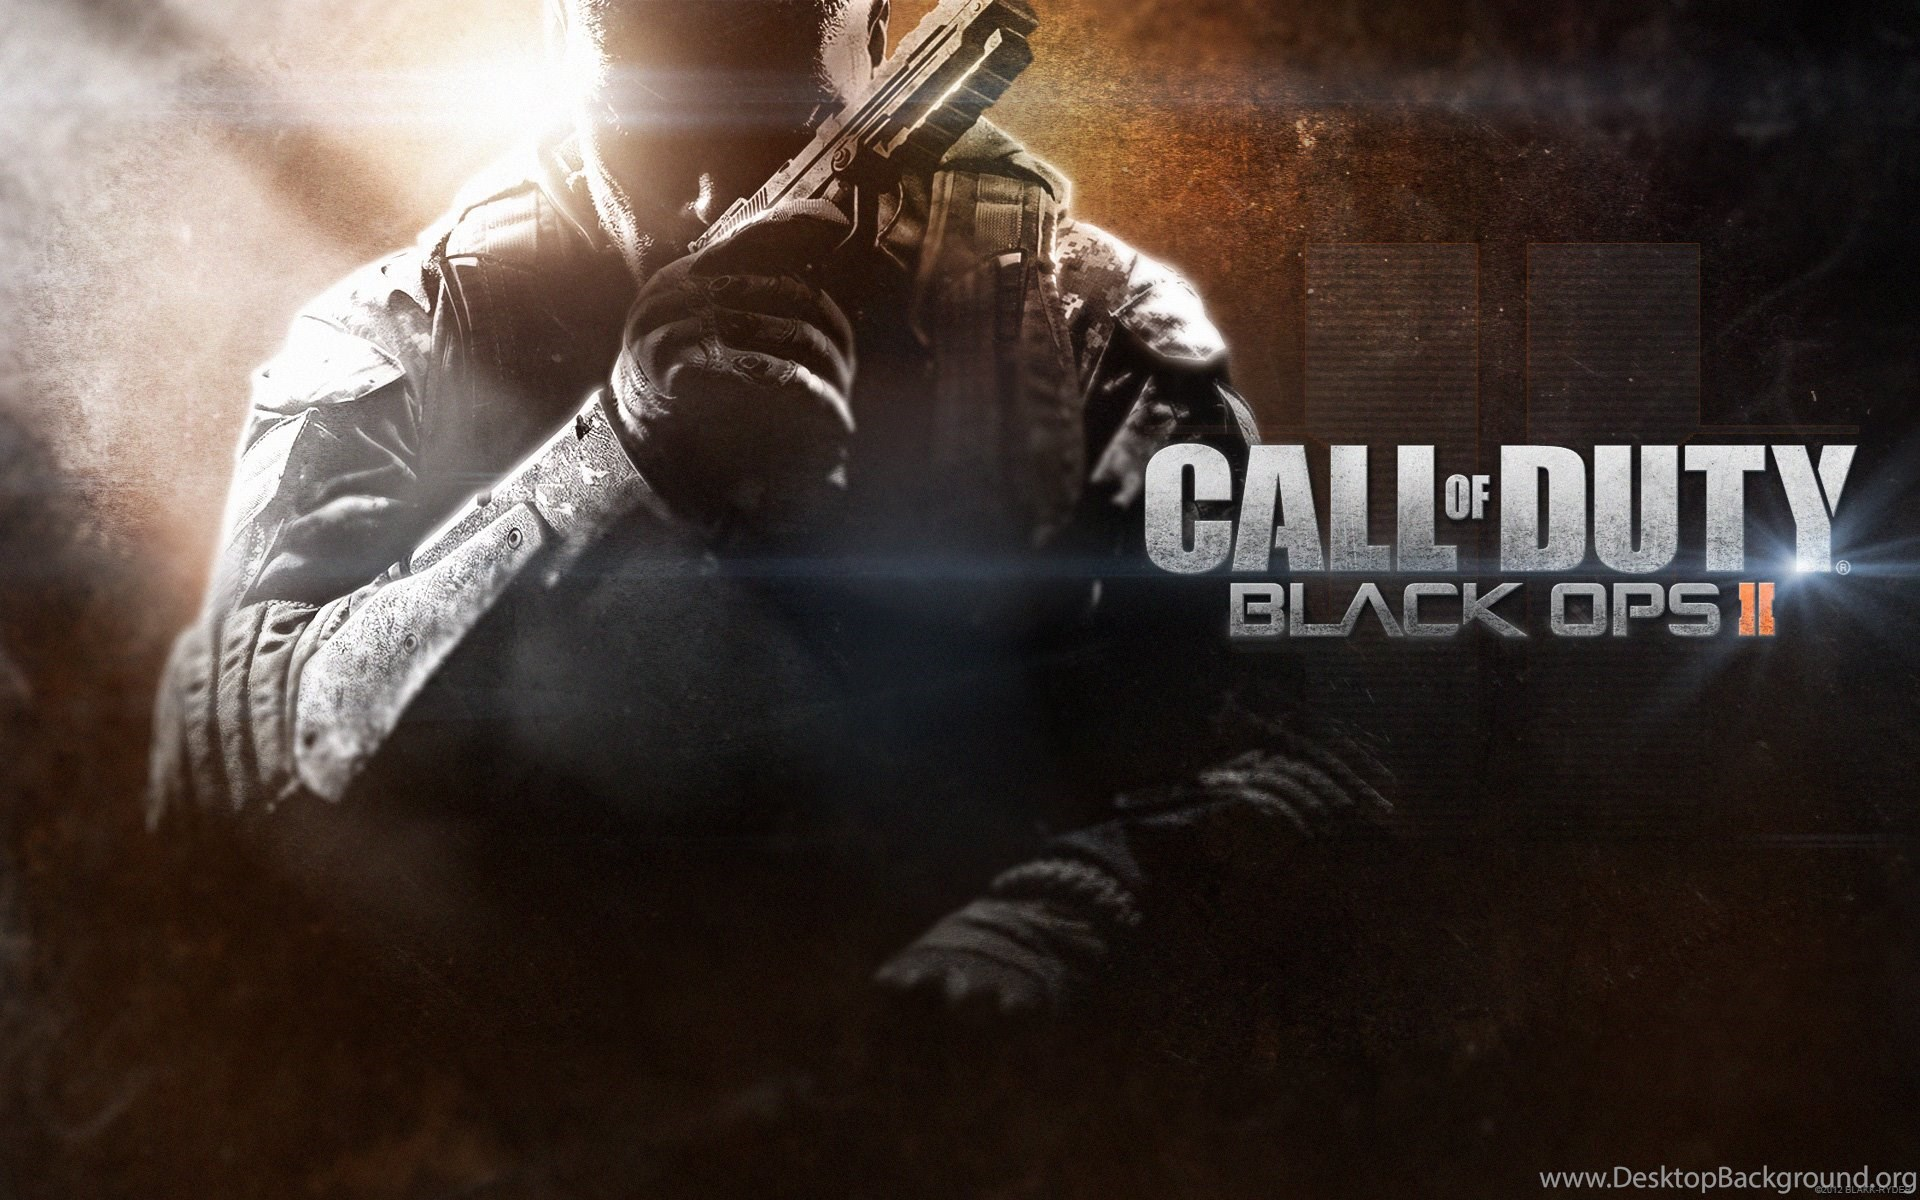 Call Of Duty Black Ops 2 Wallpapers Hd 1080p Desktop Background